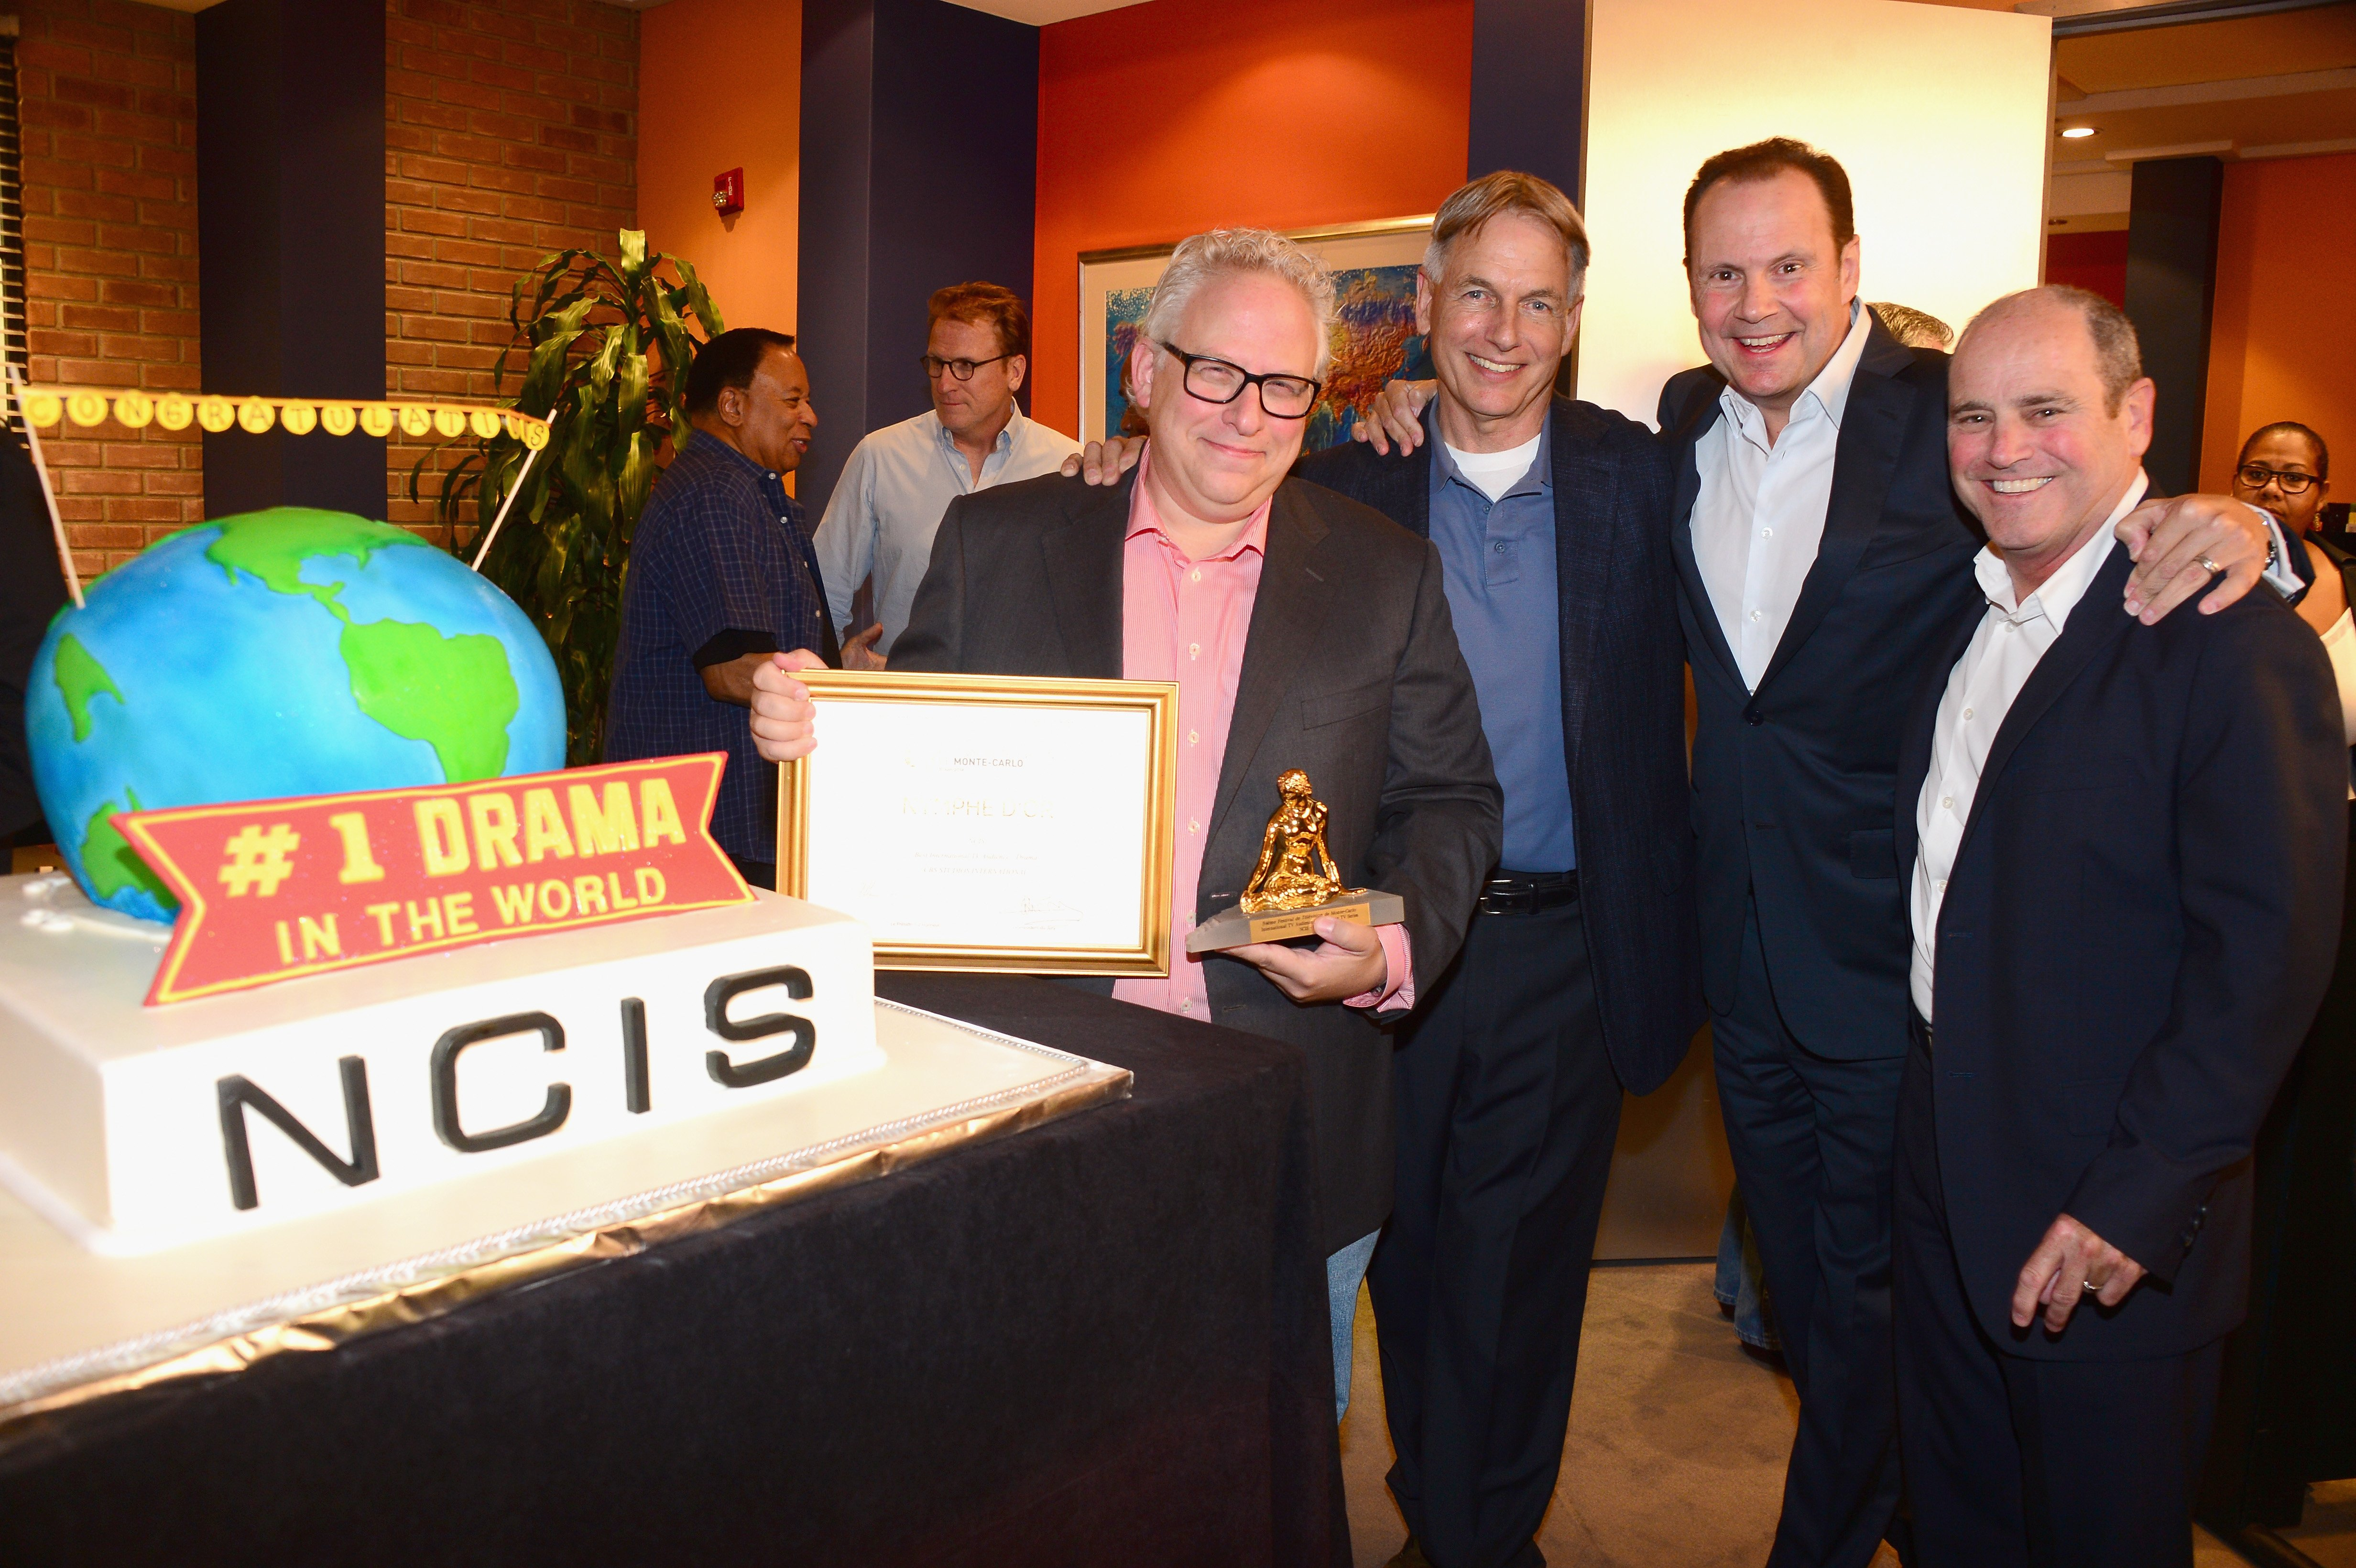 Gary Glasberg, Mark Harmon, Armando Nuñez, and CBS Paramount president David Stapf pose together to celebrate the show's milestone on August 7, 2014 in Valencia, California | Photo: Getty Images